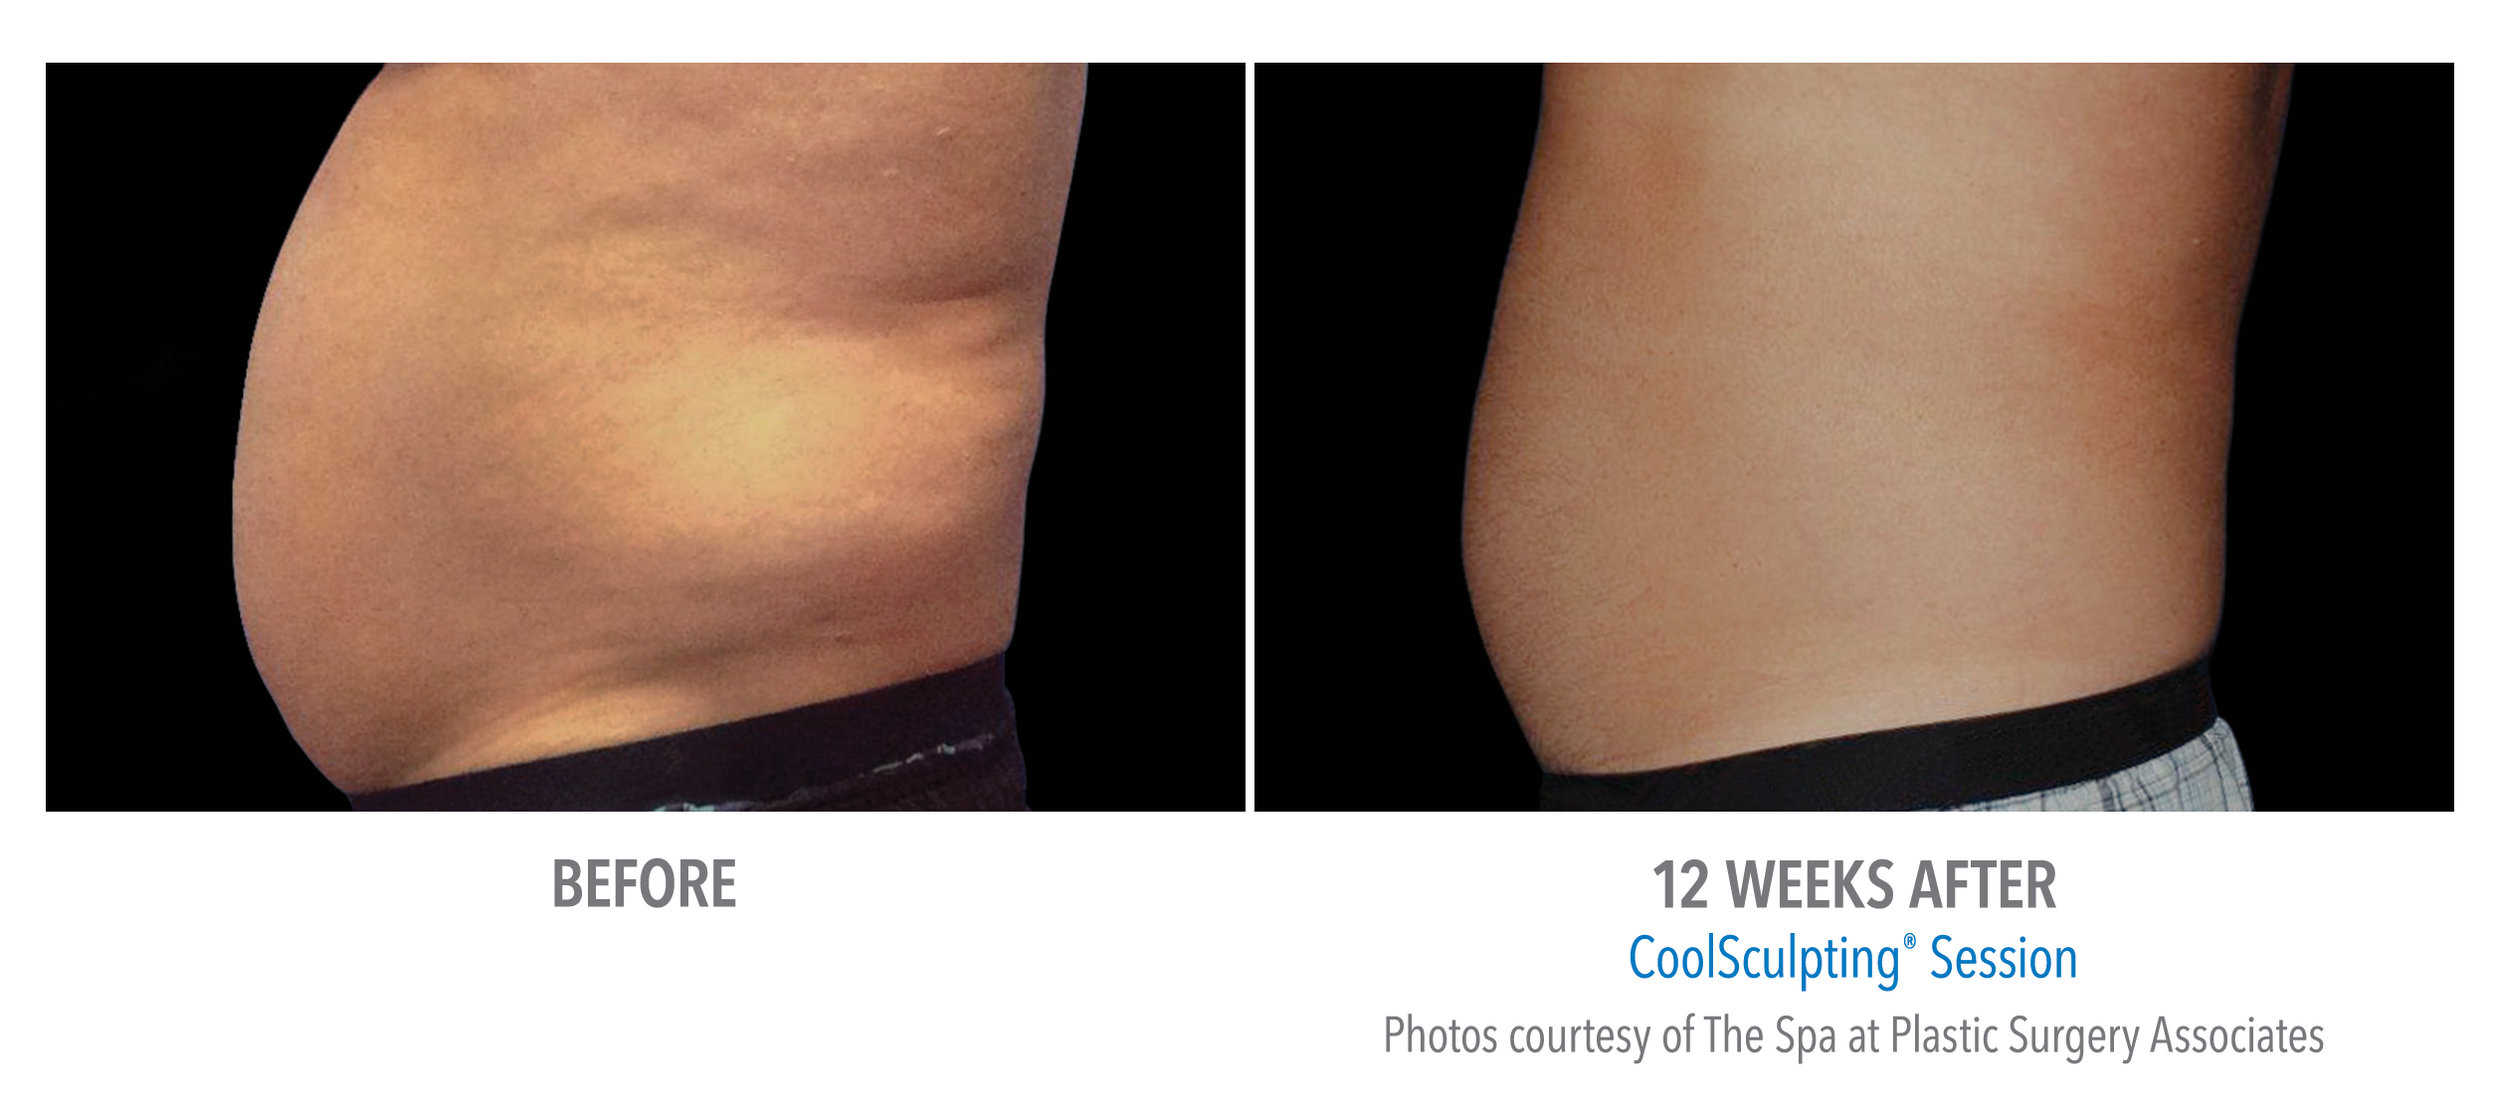 CoolSculpting Non-Surgical Liposuction - Fat Reduction - Edmonton - New Image Cosmetic - Luxury Medical Spa